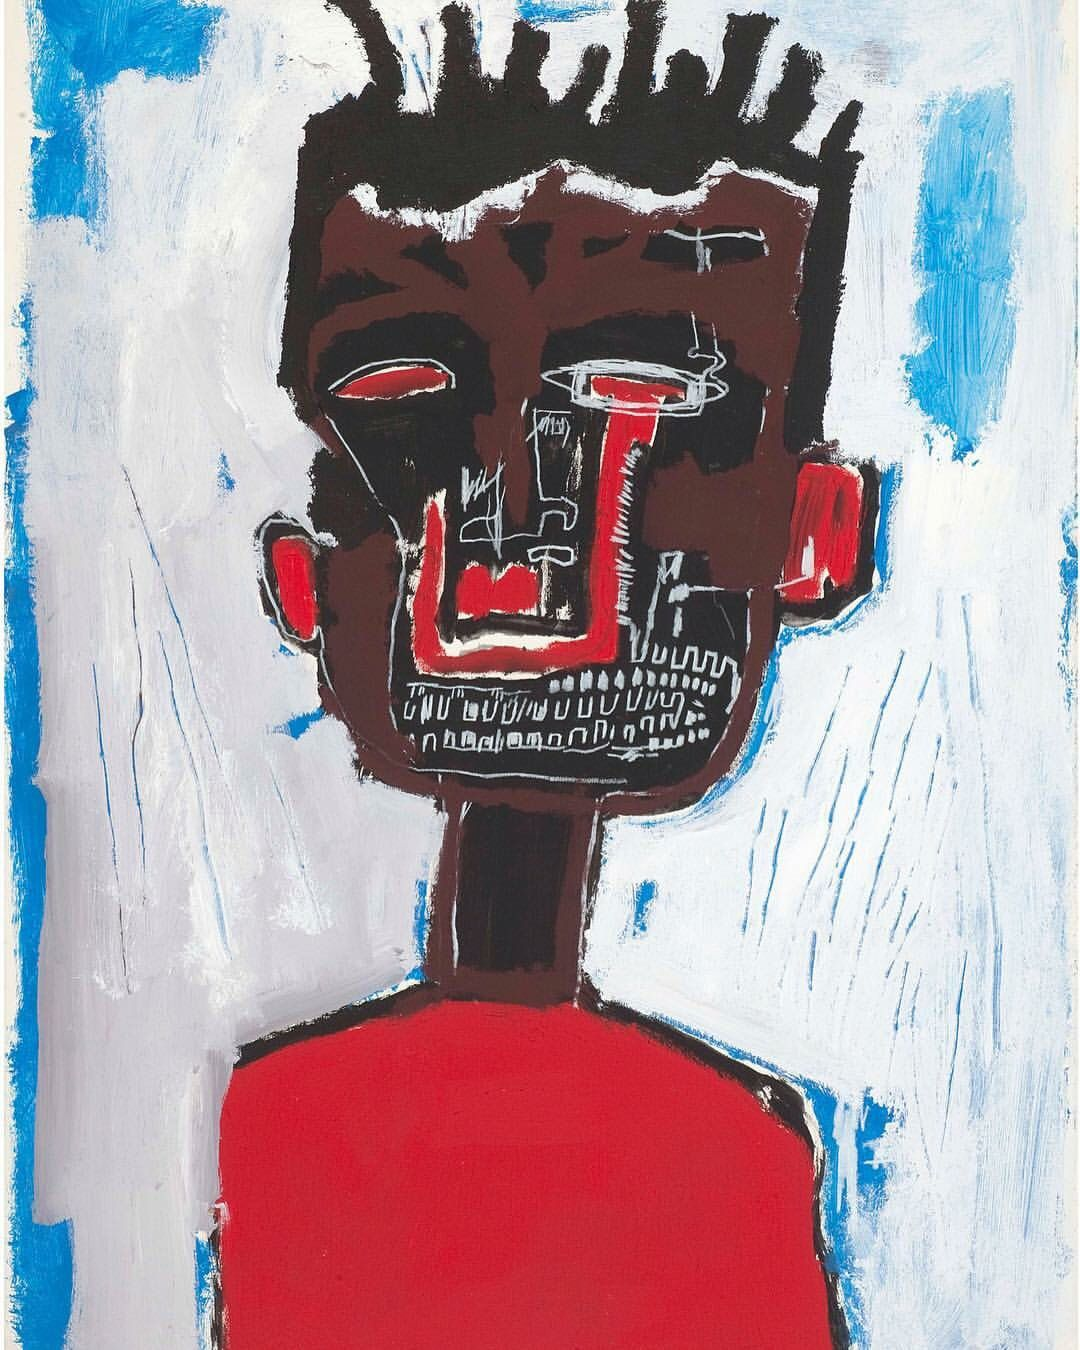 Self-Portrait, 1984 by Jean Michel-Basquiat.